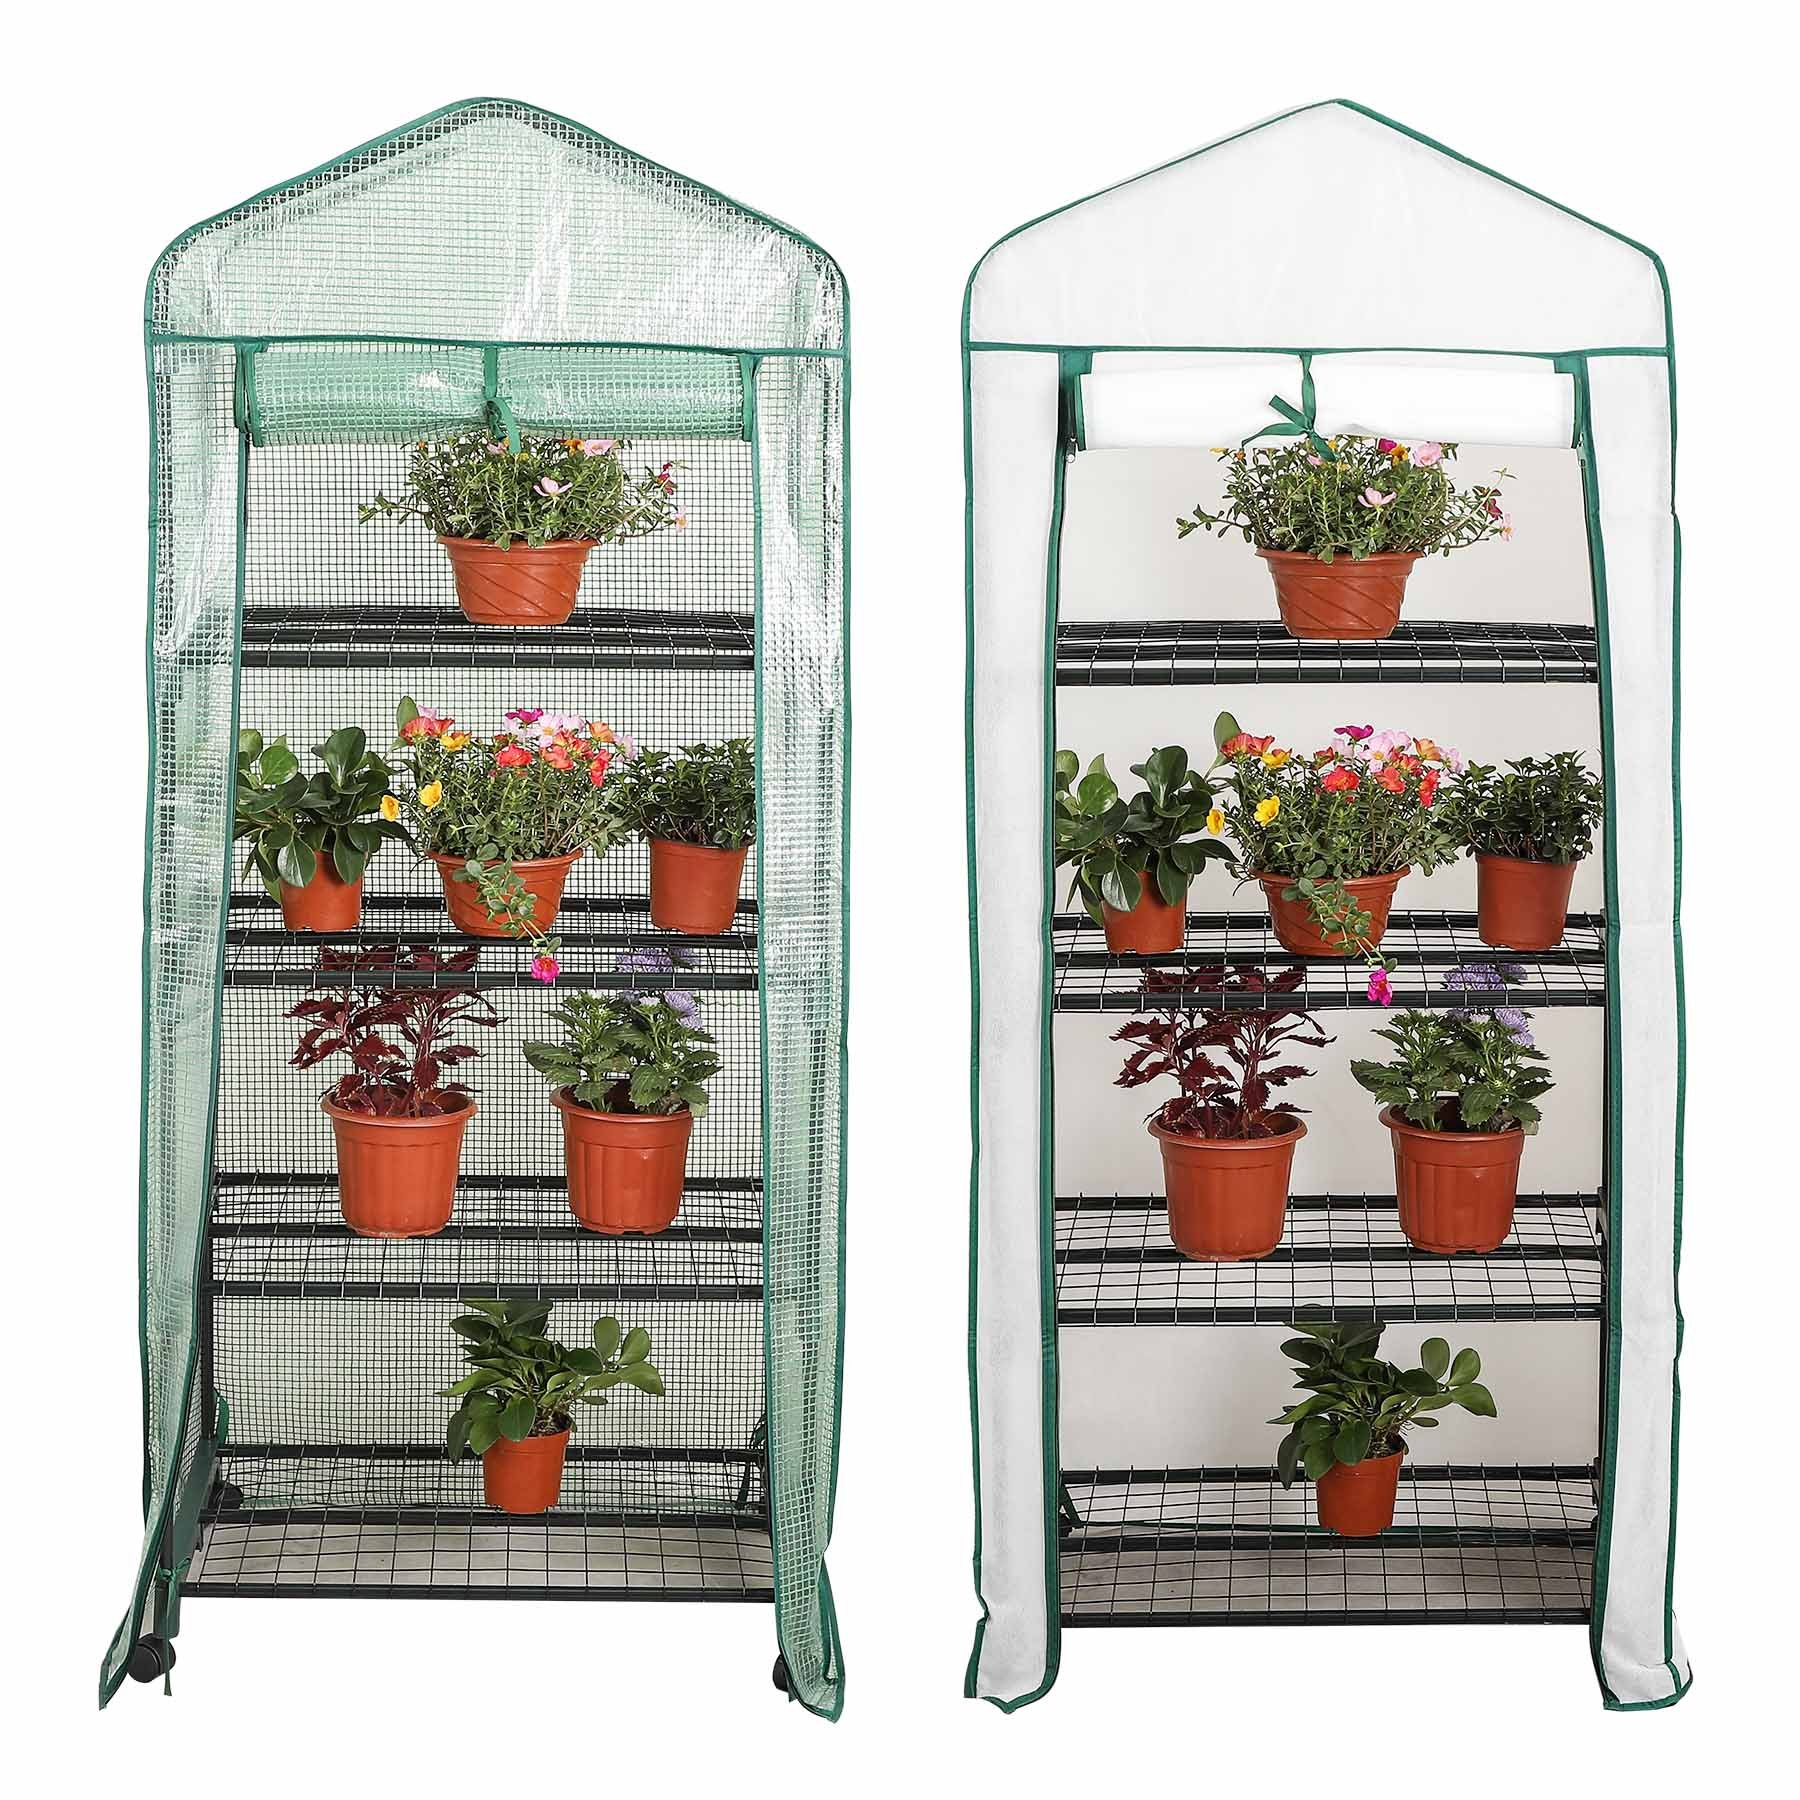 CO-Z 4-Tier Greenhouse Mini Hot House Indoor Green House PE Non-Woven Cover, Waterproof UV Protected Greenhouse Tent on Wheels, 2.3' L x 1.6' W x 5.2' H